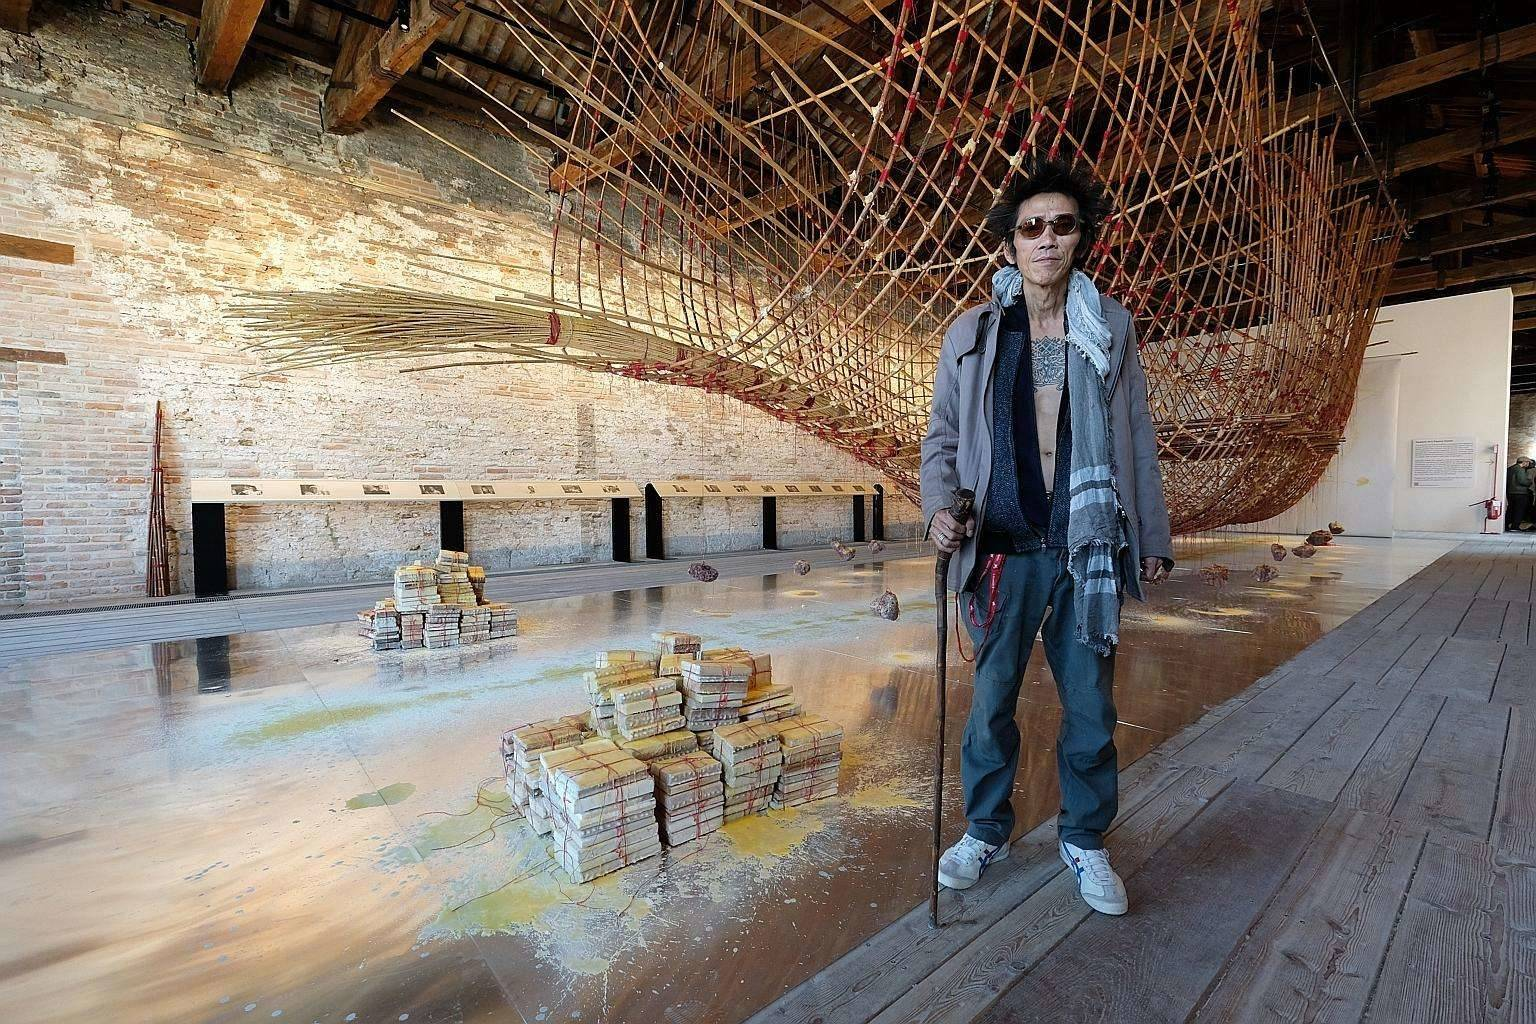 Acclaimed Singaporean artist Zai Kuning, who is currently based in Ipoh for research work, will be presenting an acoustic showcase on Dec 5. He is also part of the film discussion surrounding his 'Riau' documentary on Dec 6. Photo: Filepic